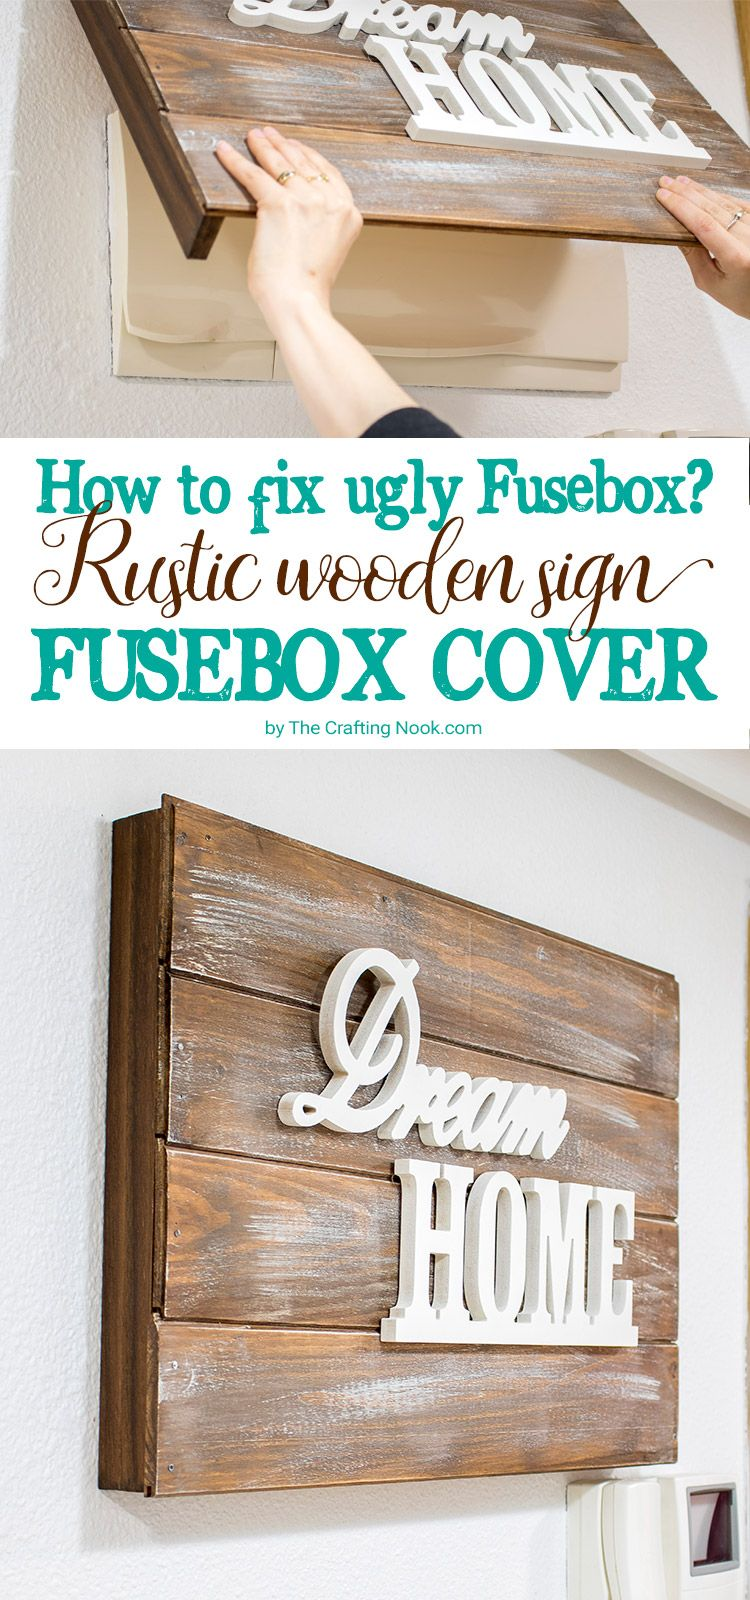 hight resolution of rustic wooden sign fusebox cover how to the crafting nook by titicrafty